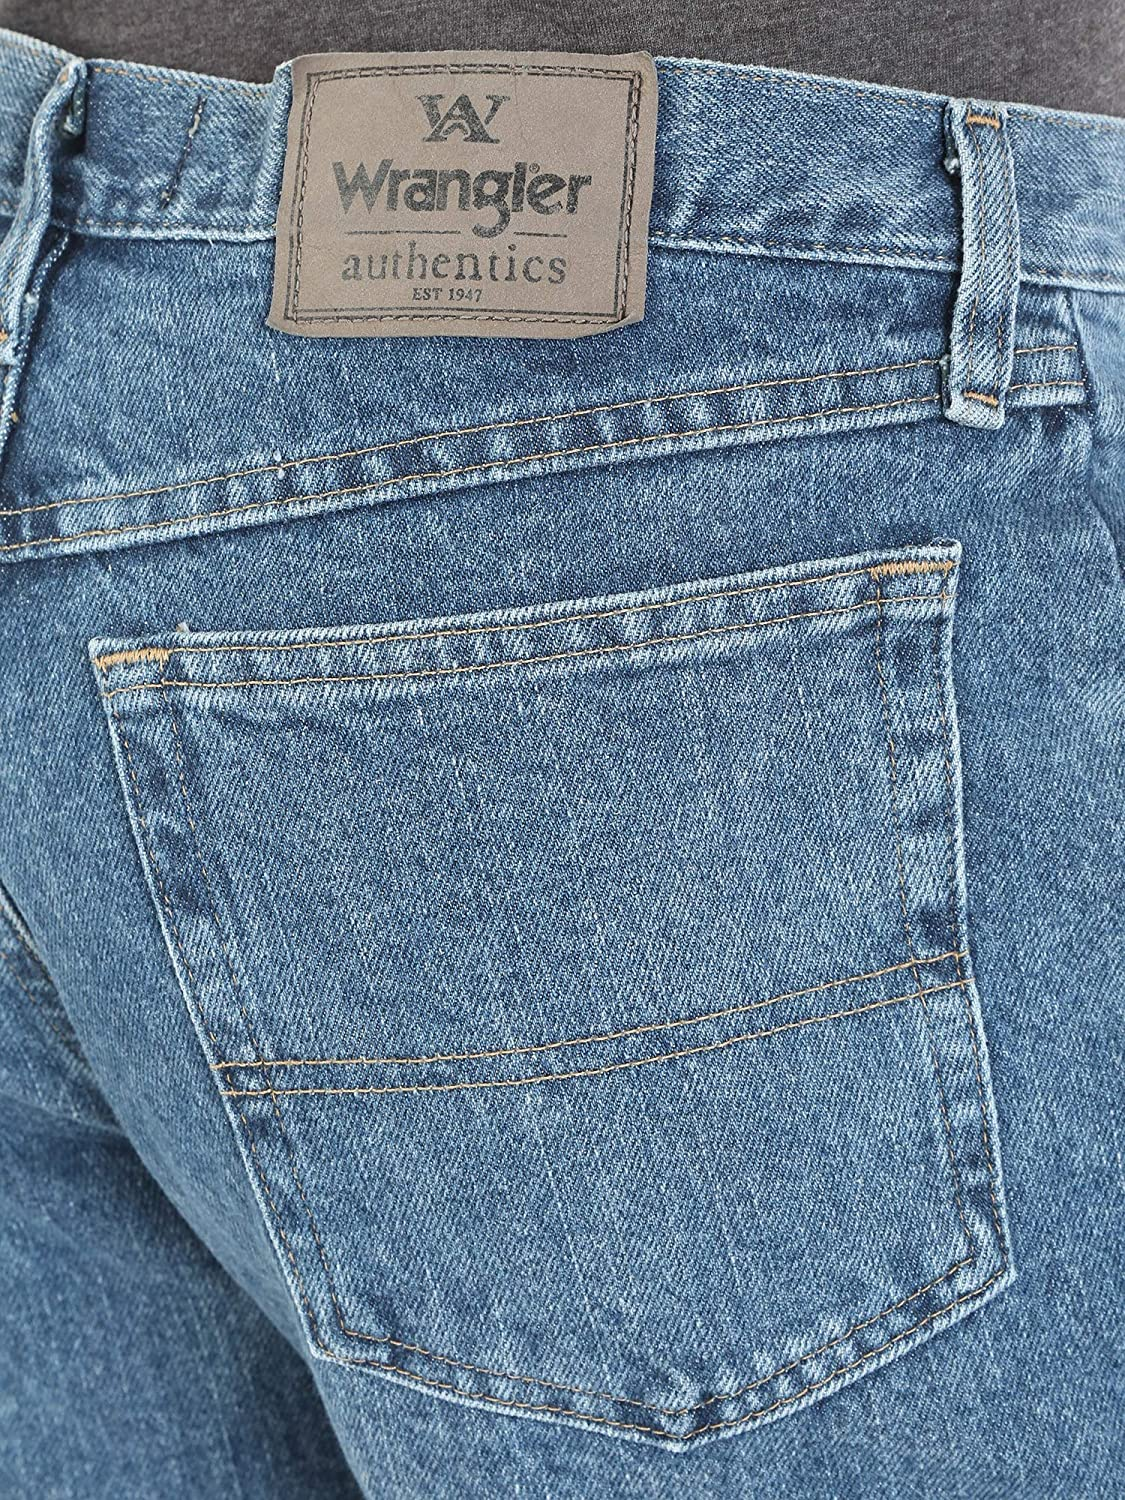 Wrangler Authentics Mens Big & Tall Classic Relaxed Fit Jean Homme Bleu (Vintage Stonewash)